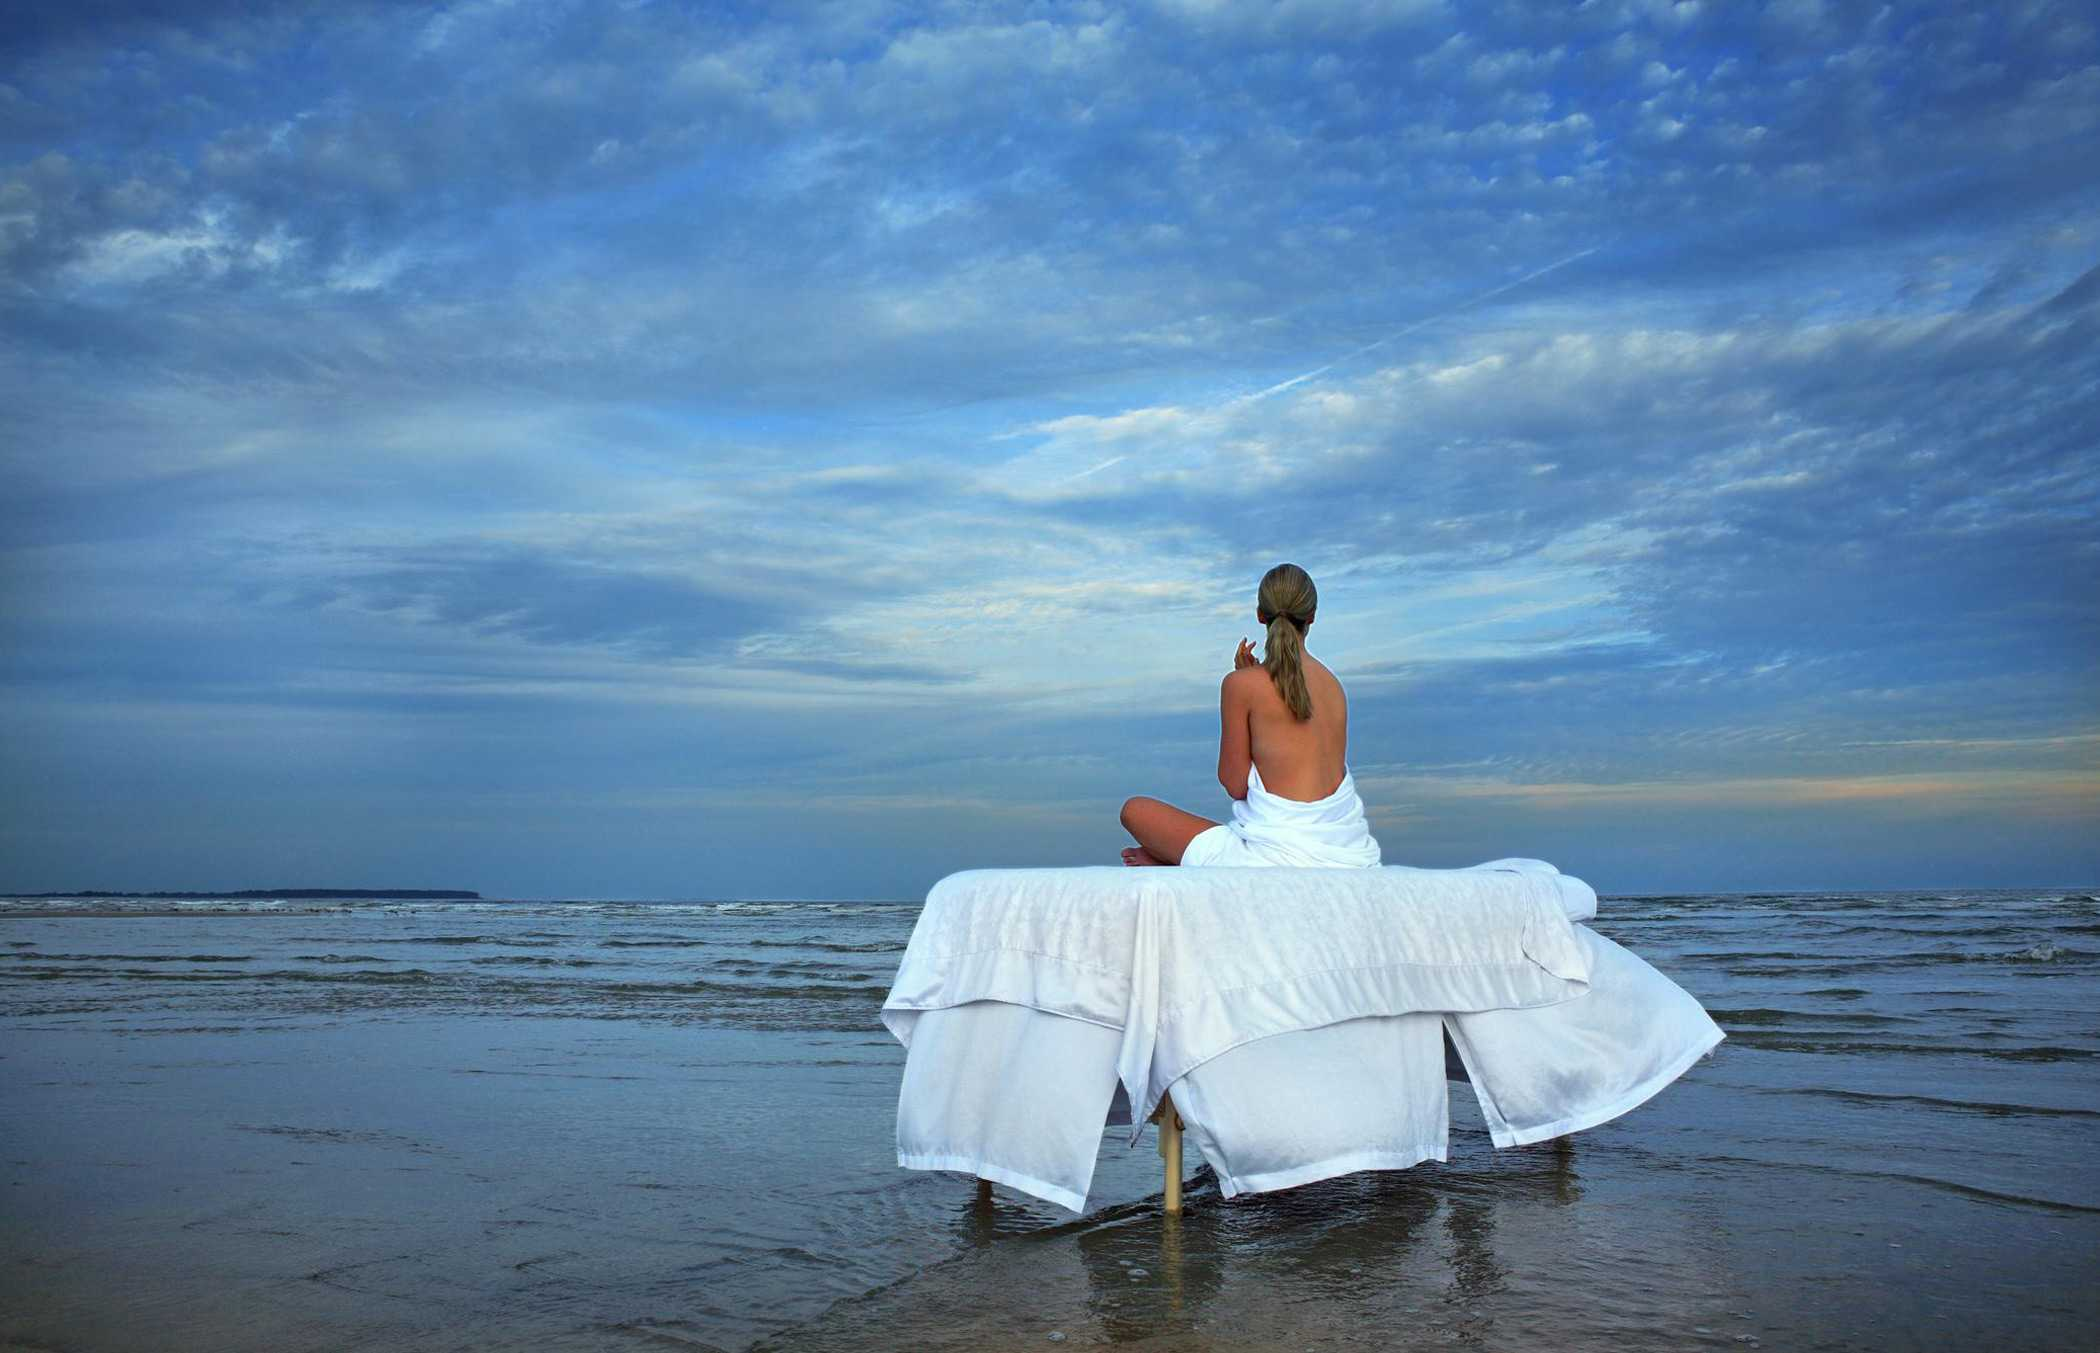 A woman sitting on a massage table overlooking the beach at dusk